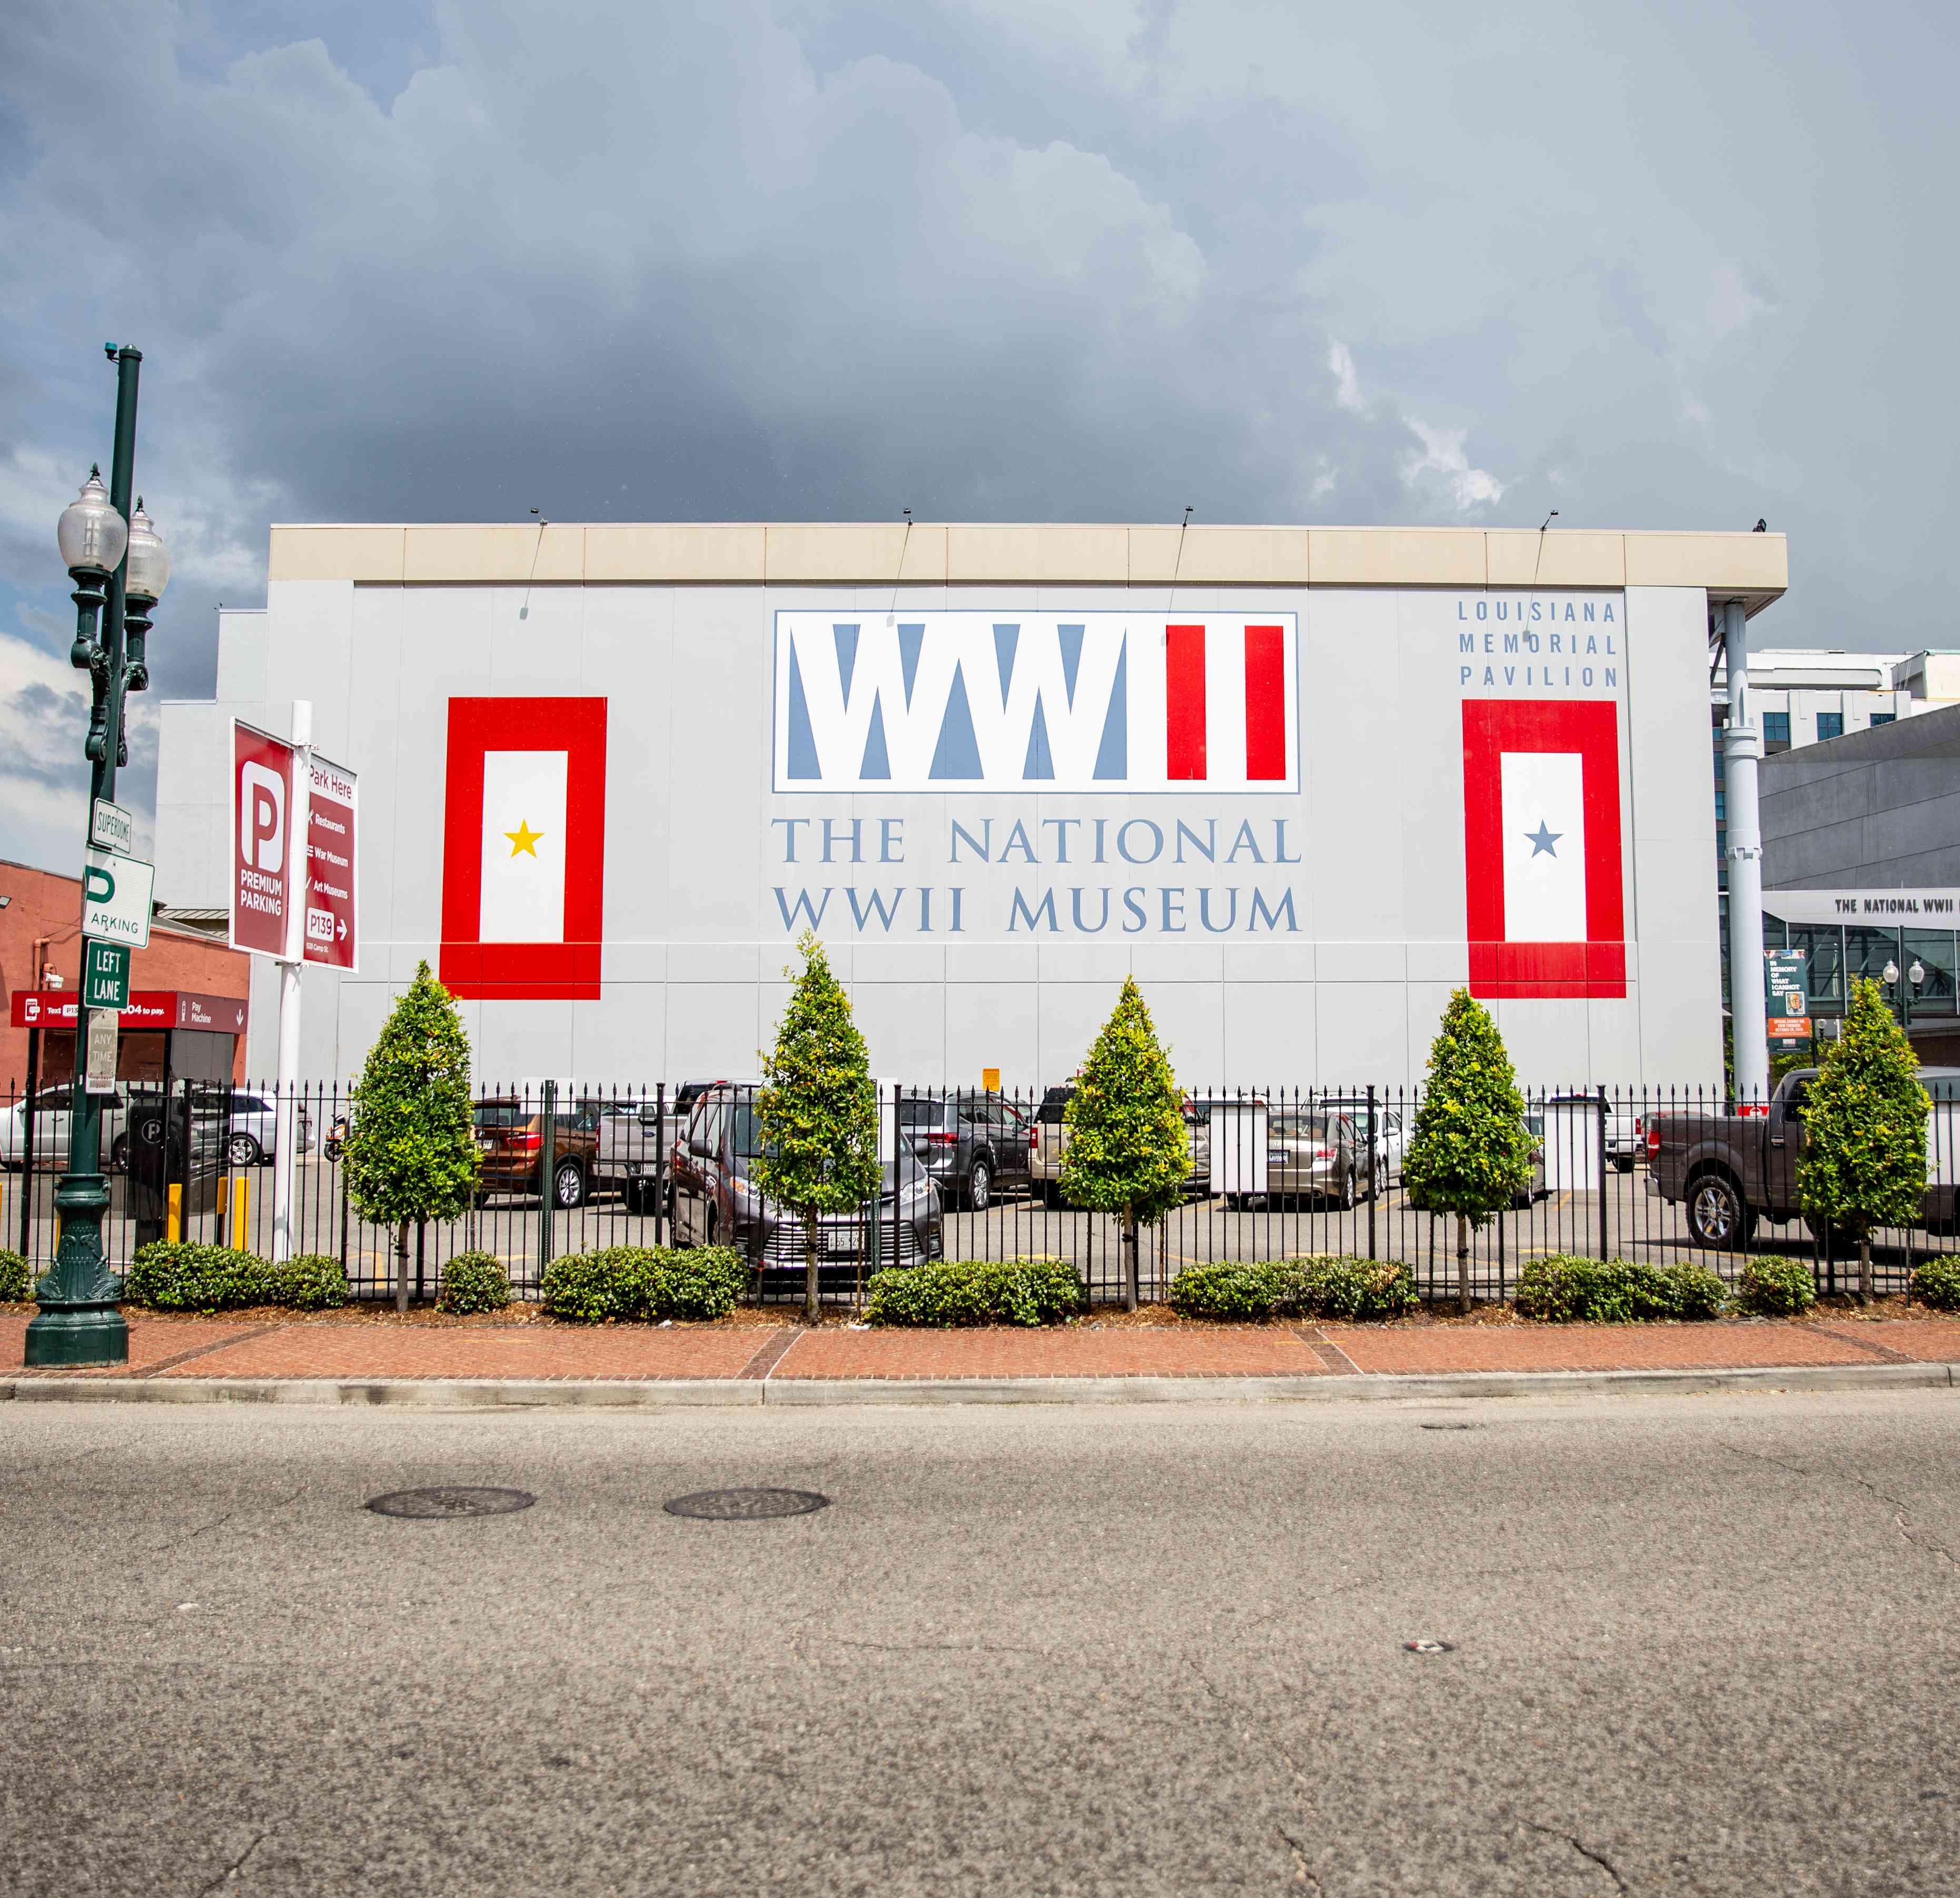 Entrance to the WWII Museum